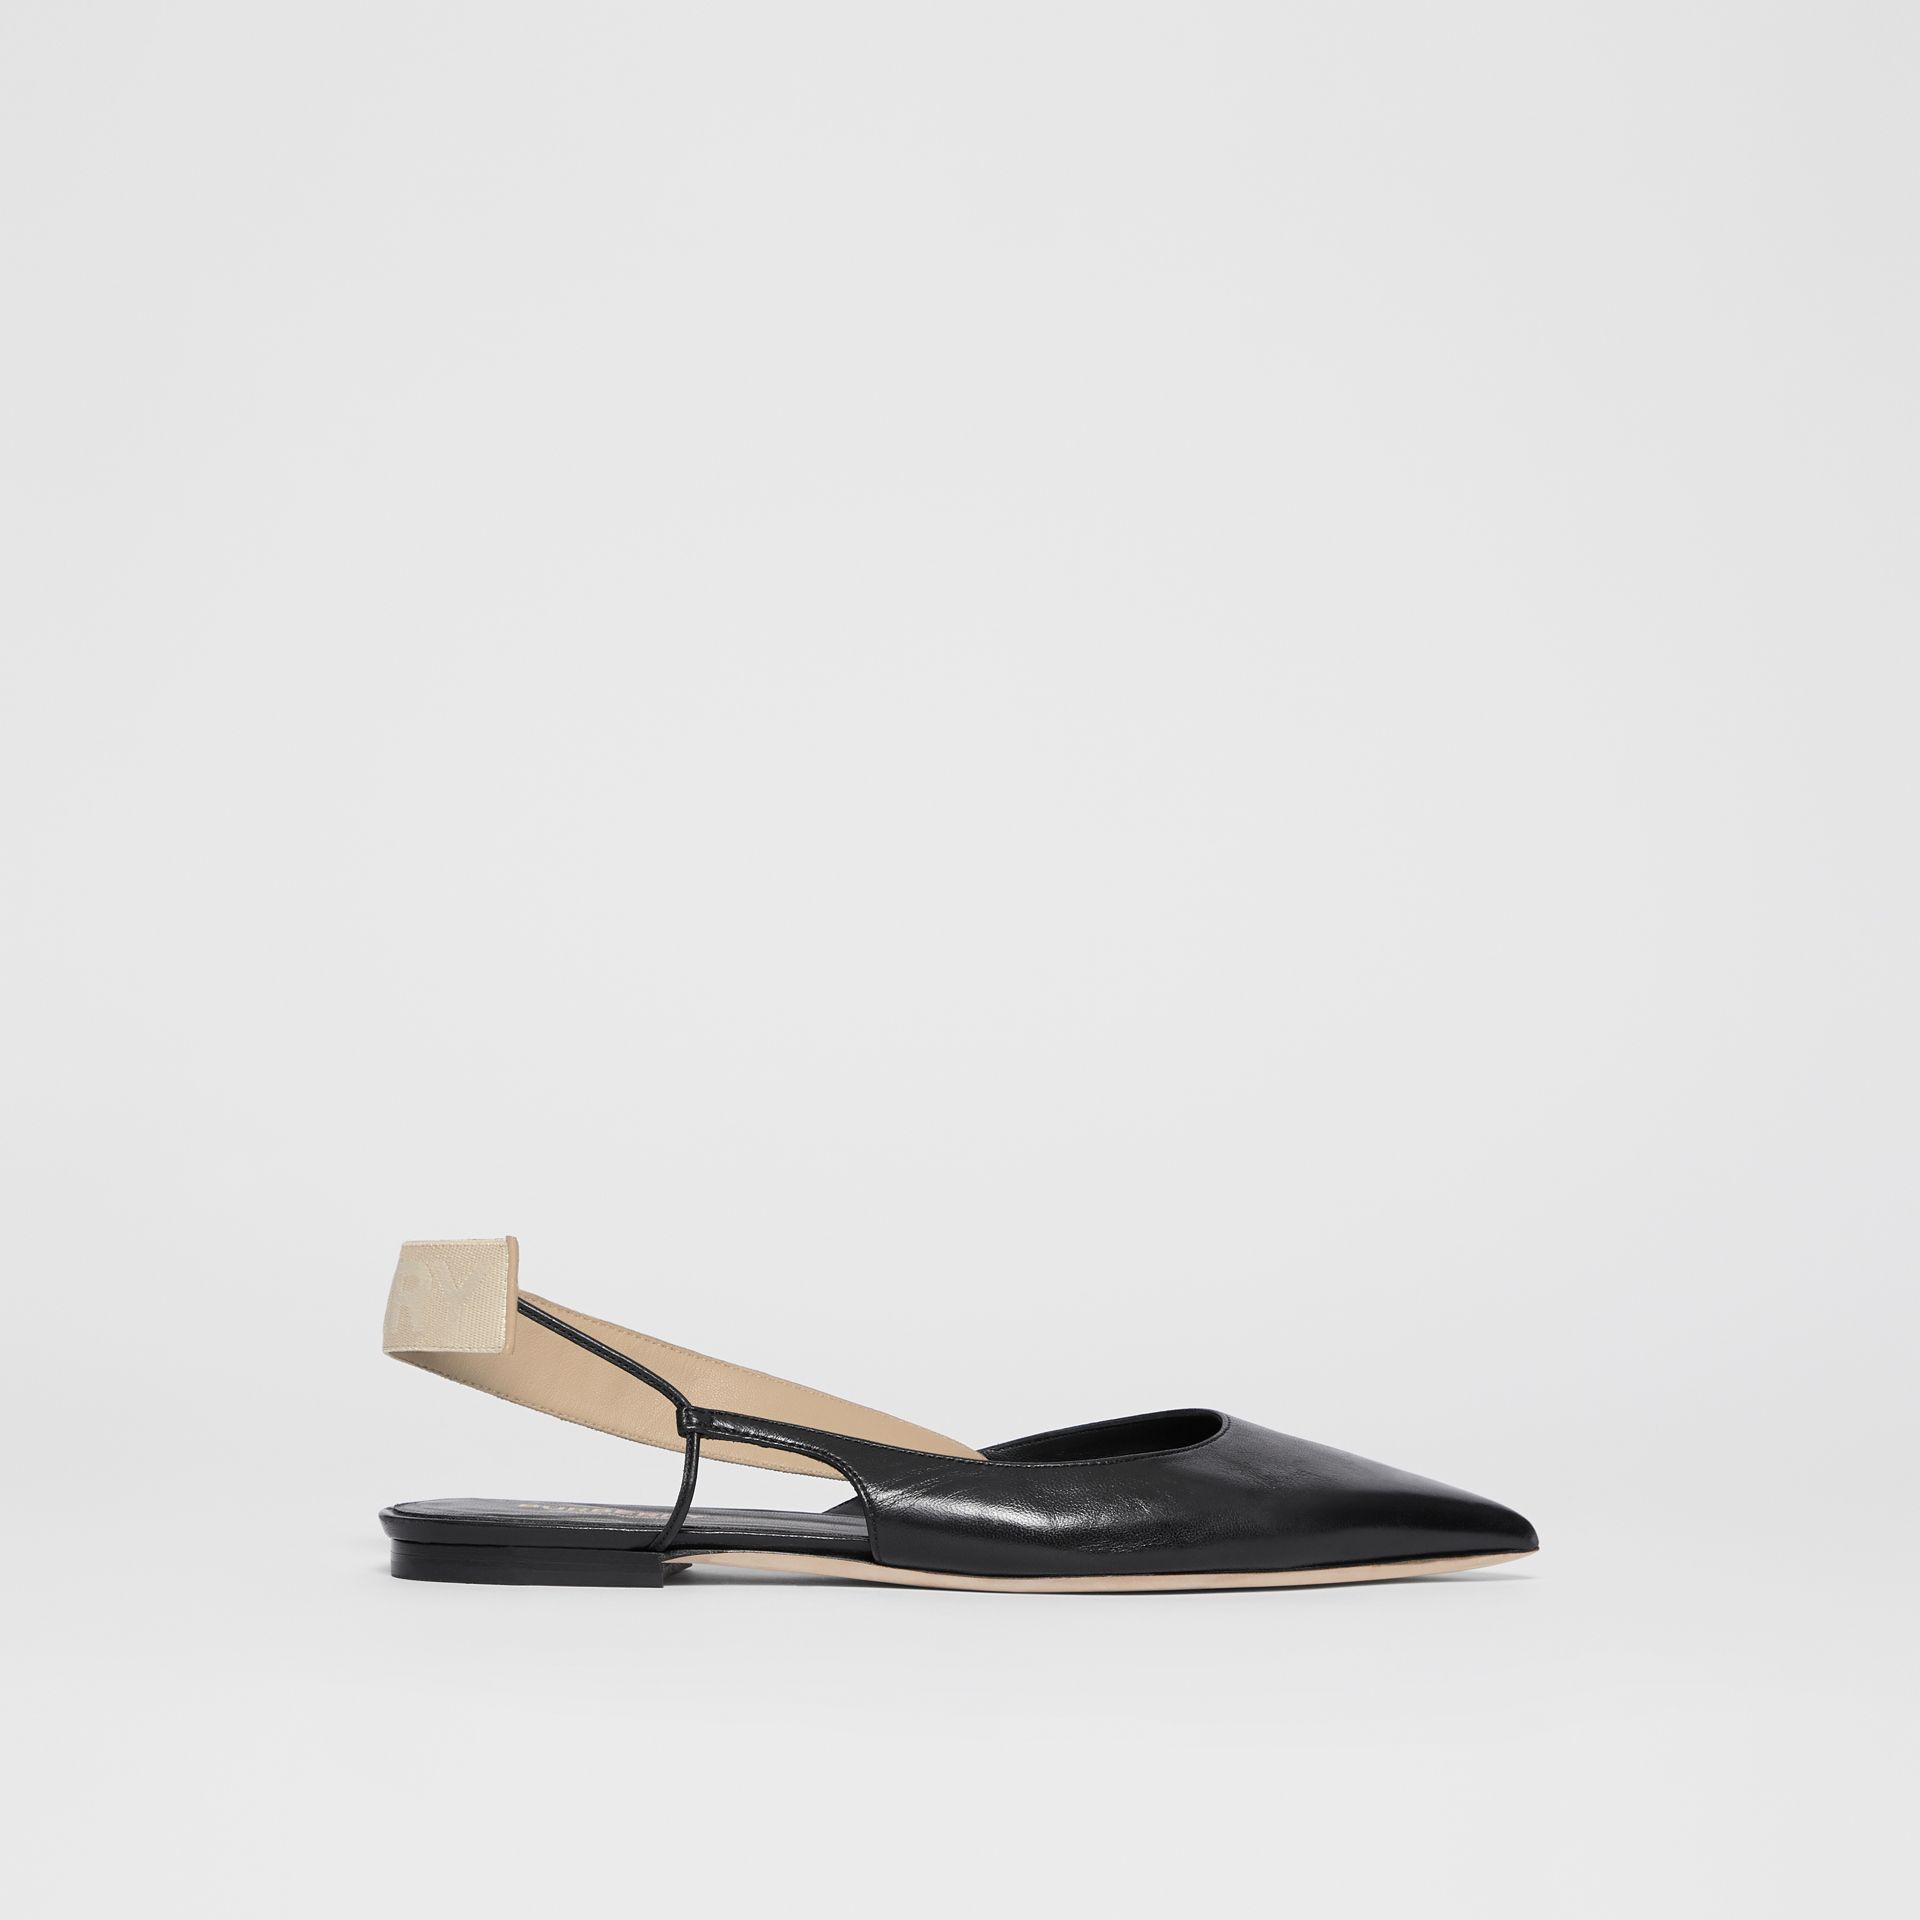 Logo Detail Leather Slingback Flats in Black - Women | Burberry Hong Kong S.A.R - gallery image 5